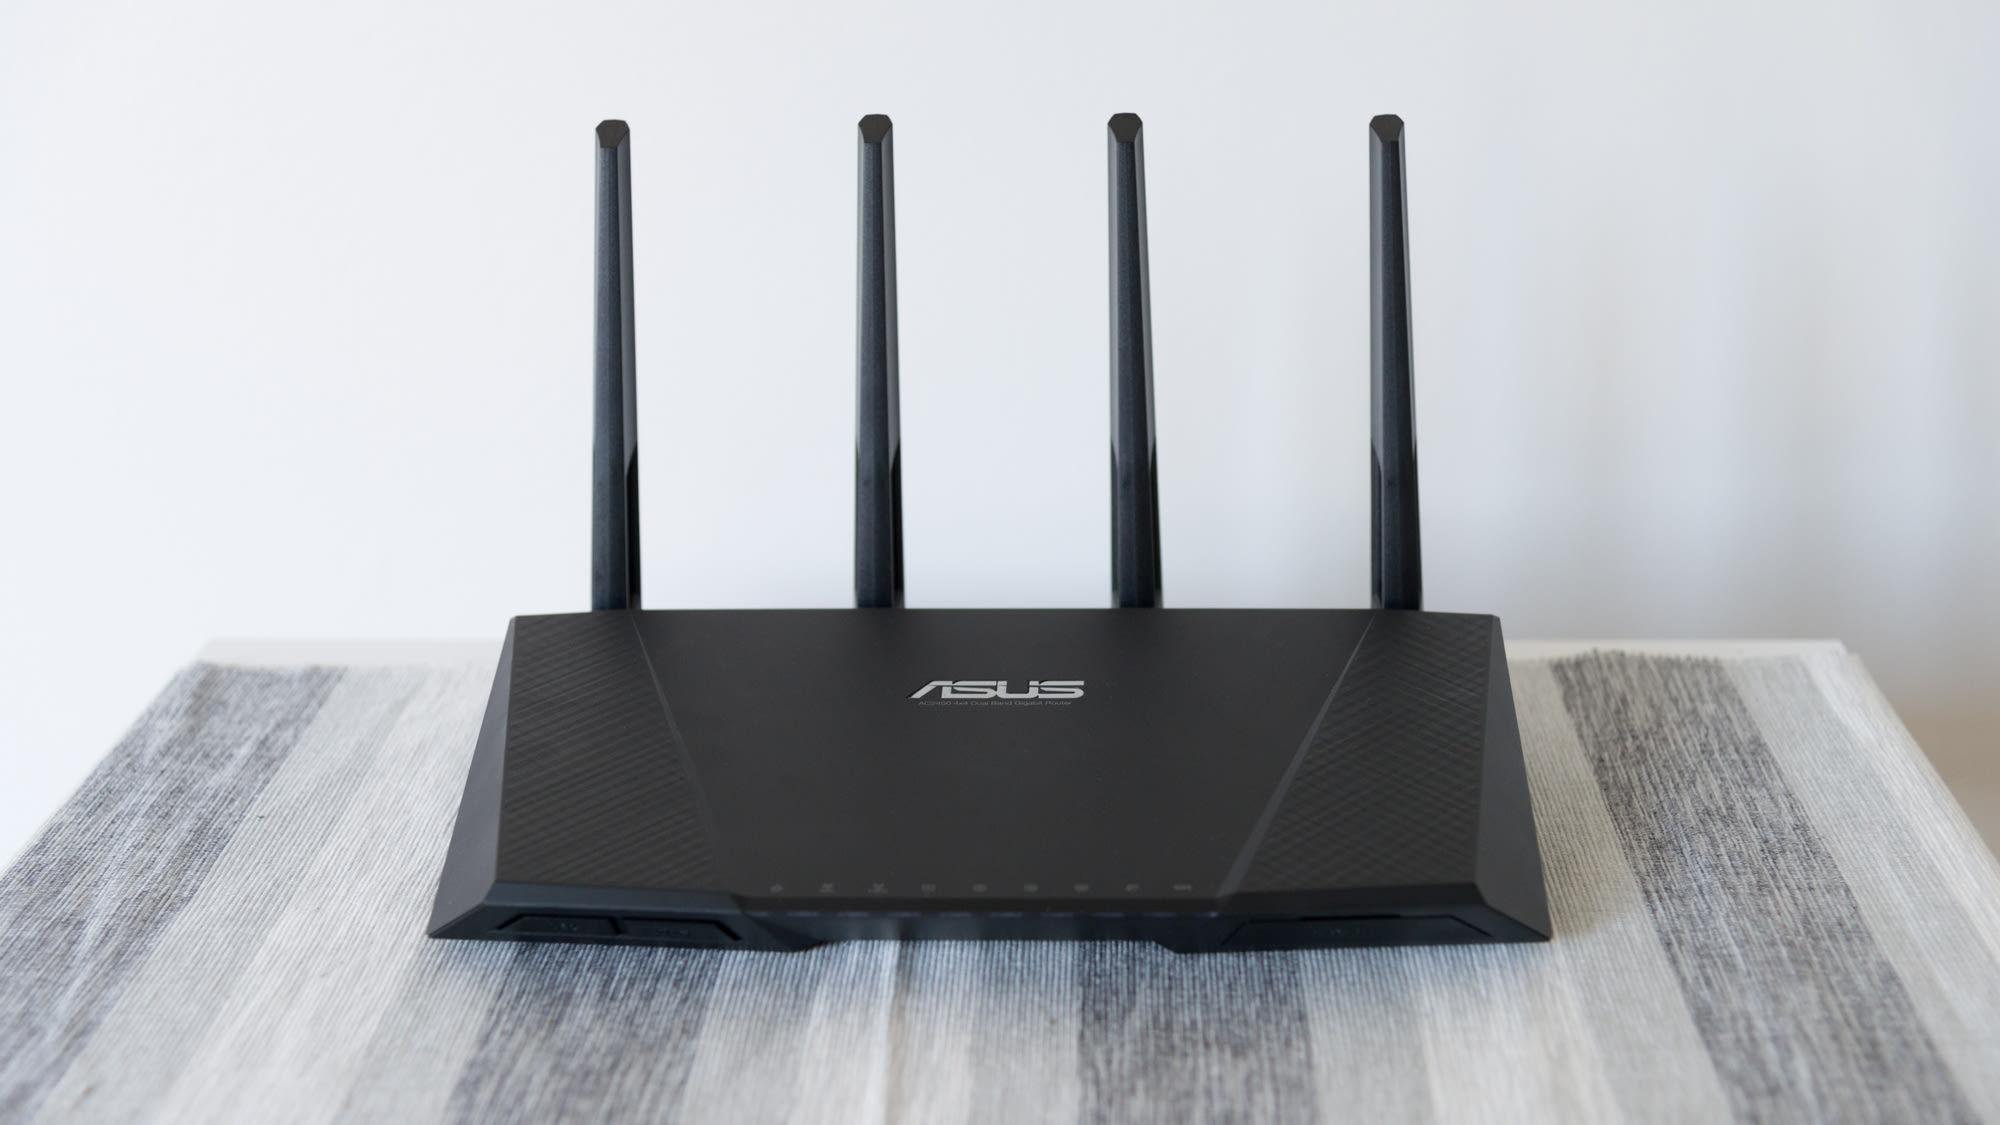 ASUS wireless network router